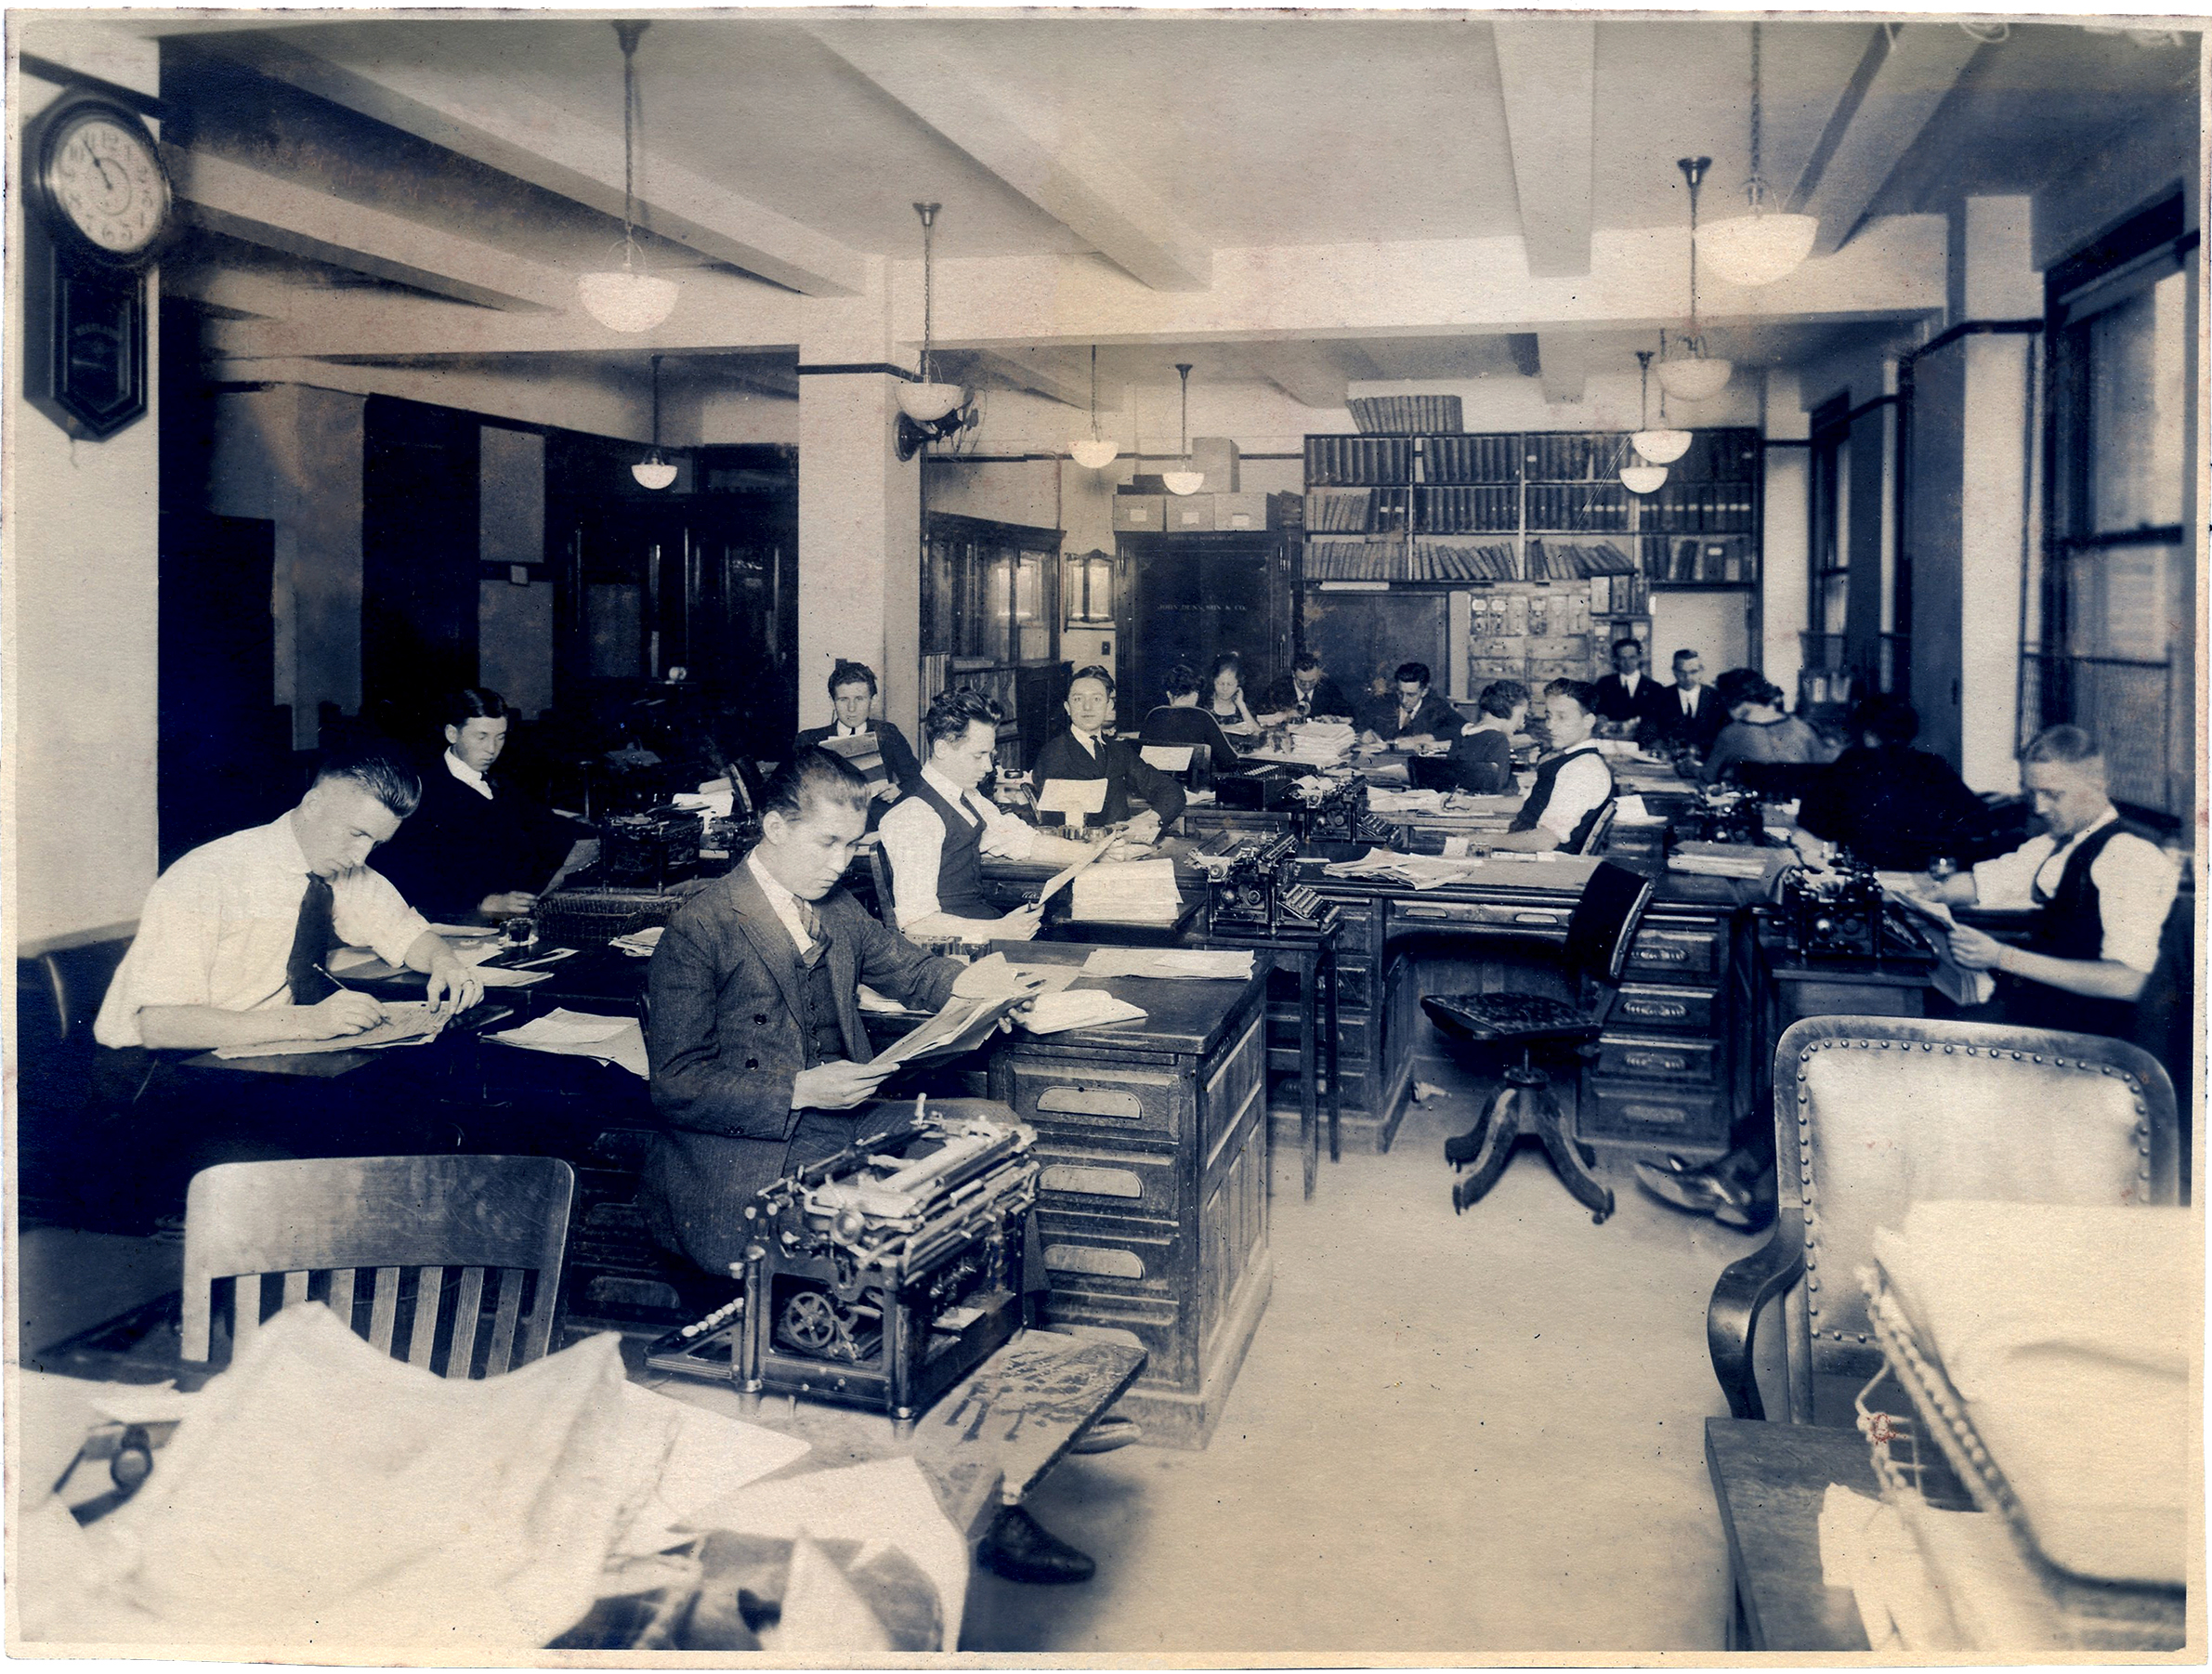 Vintage Fotos Interesting Vintage Office Photo With Office Workers